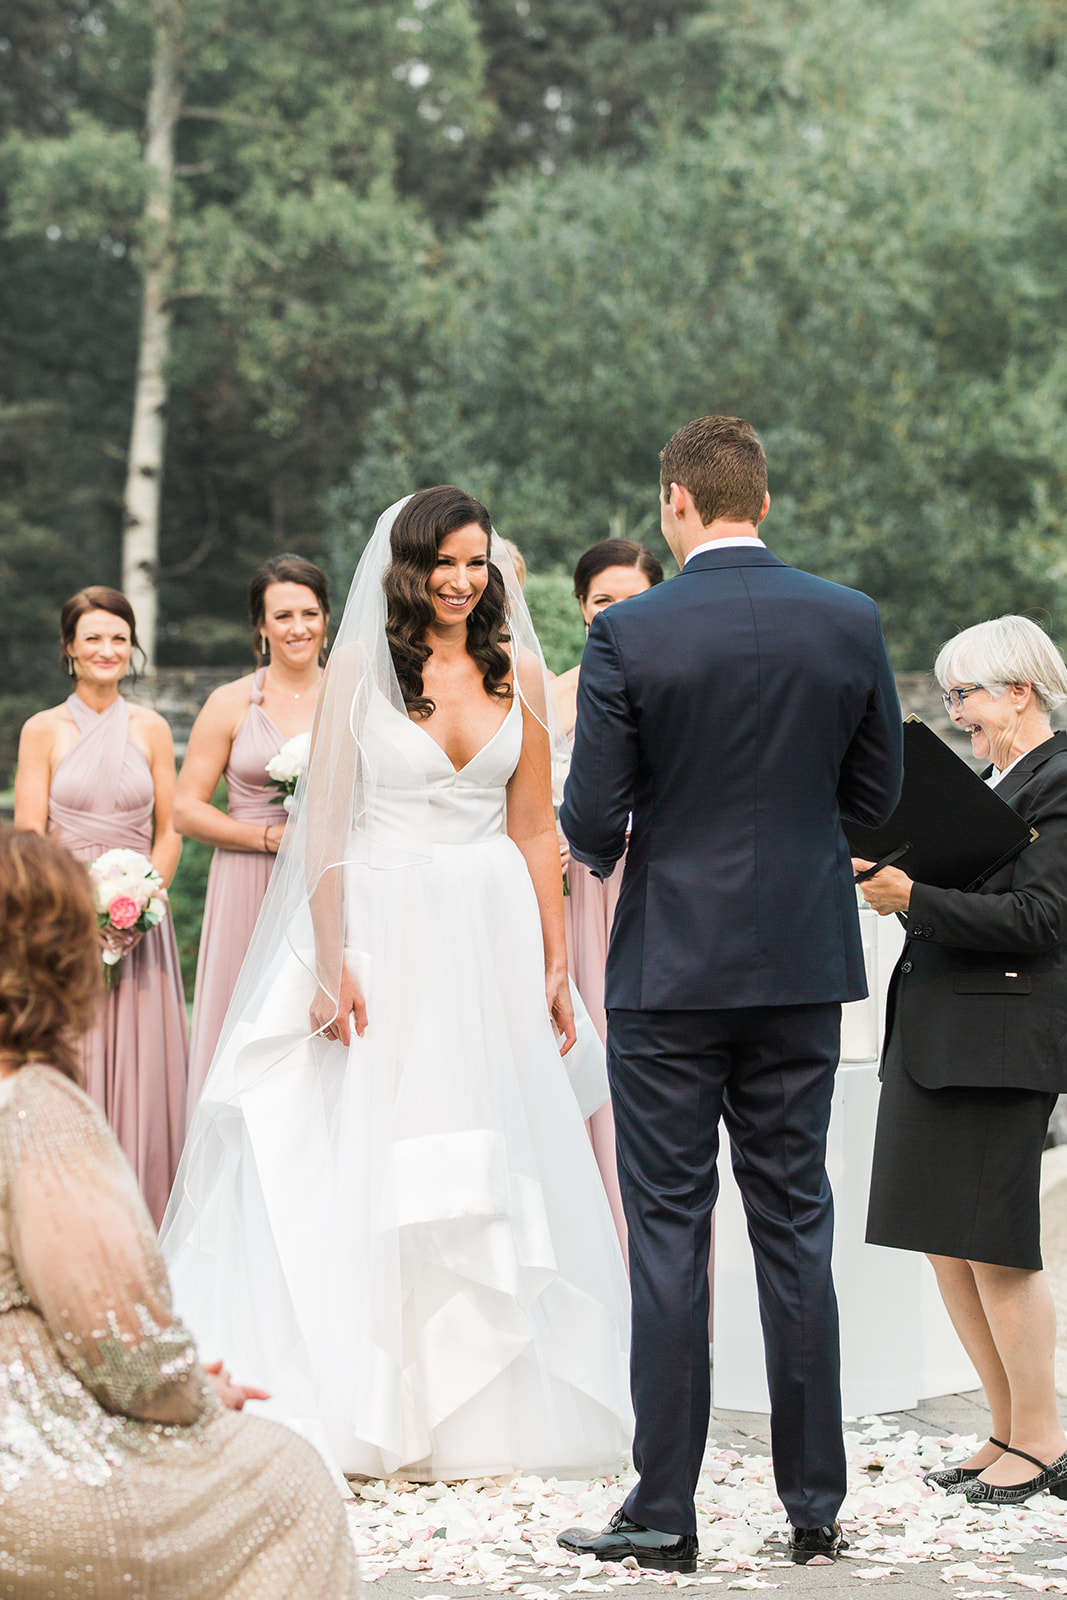 8 Tips for Choosing Your Wedding Photographer - Tips from the Pros - Sarah Beau on The Bronte Bride Blog